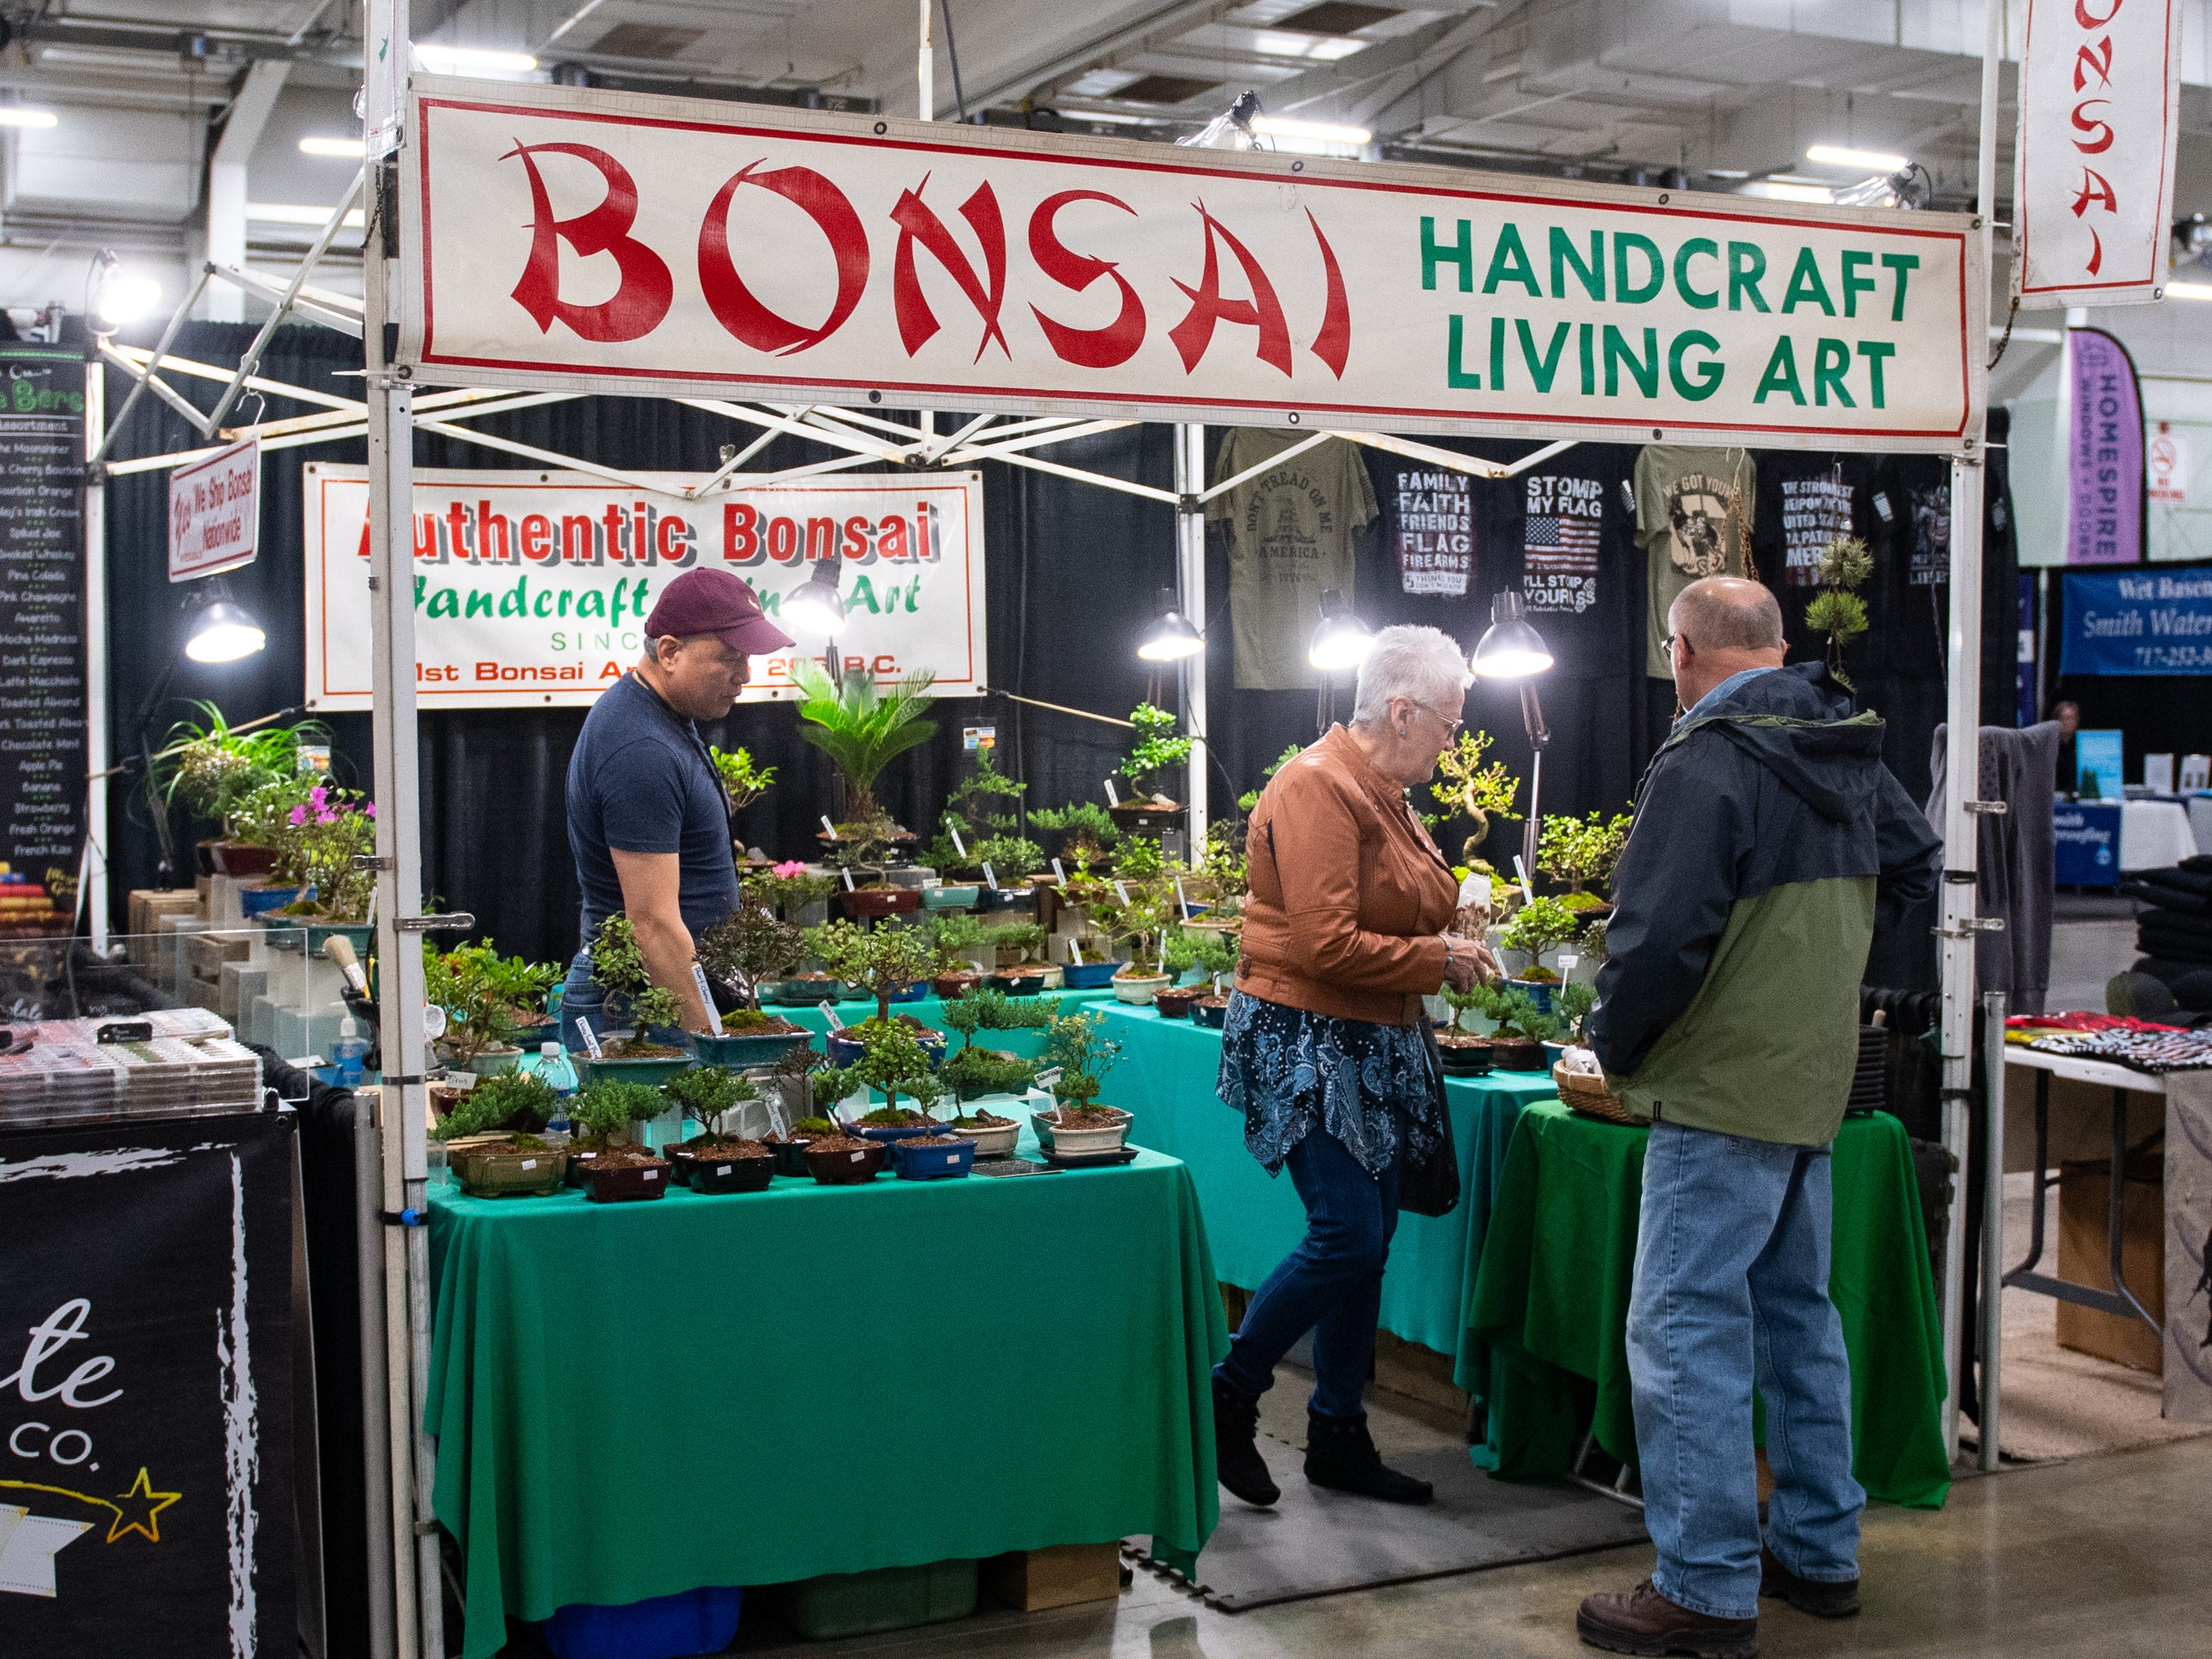 Bonsai has a booth at the 2019 Home & Garden Show, February 8, 2019.